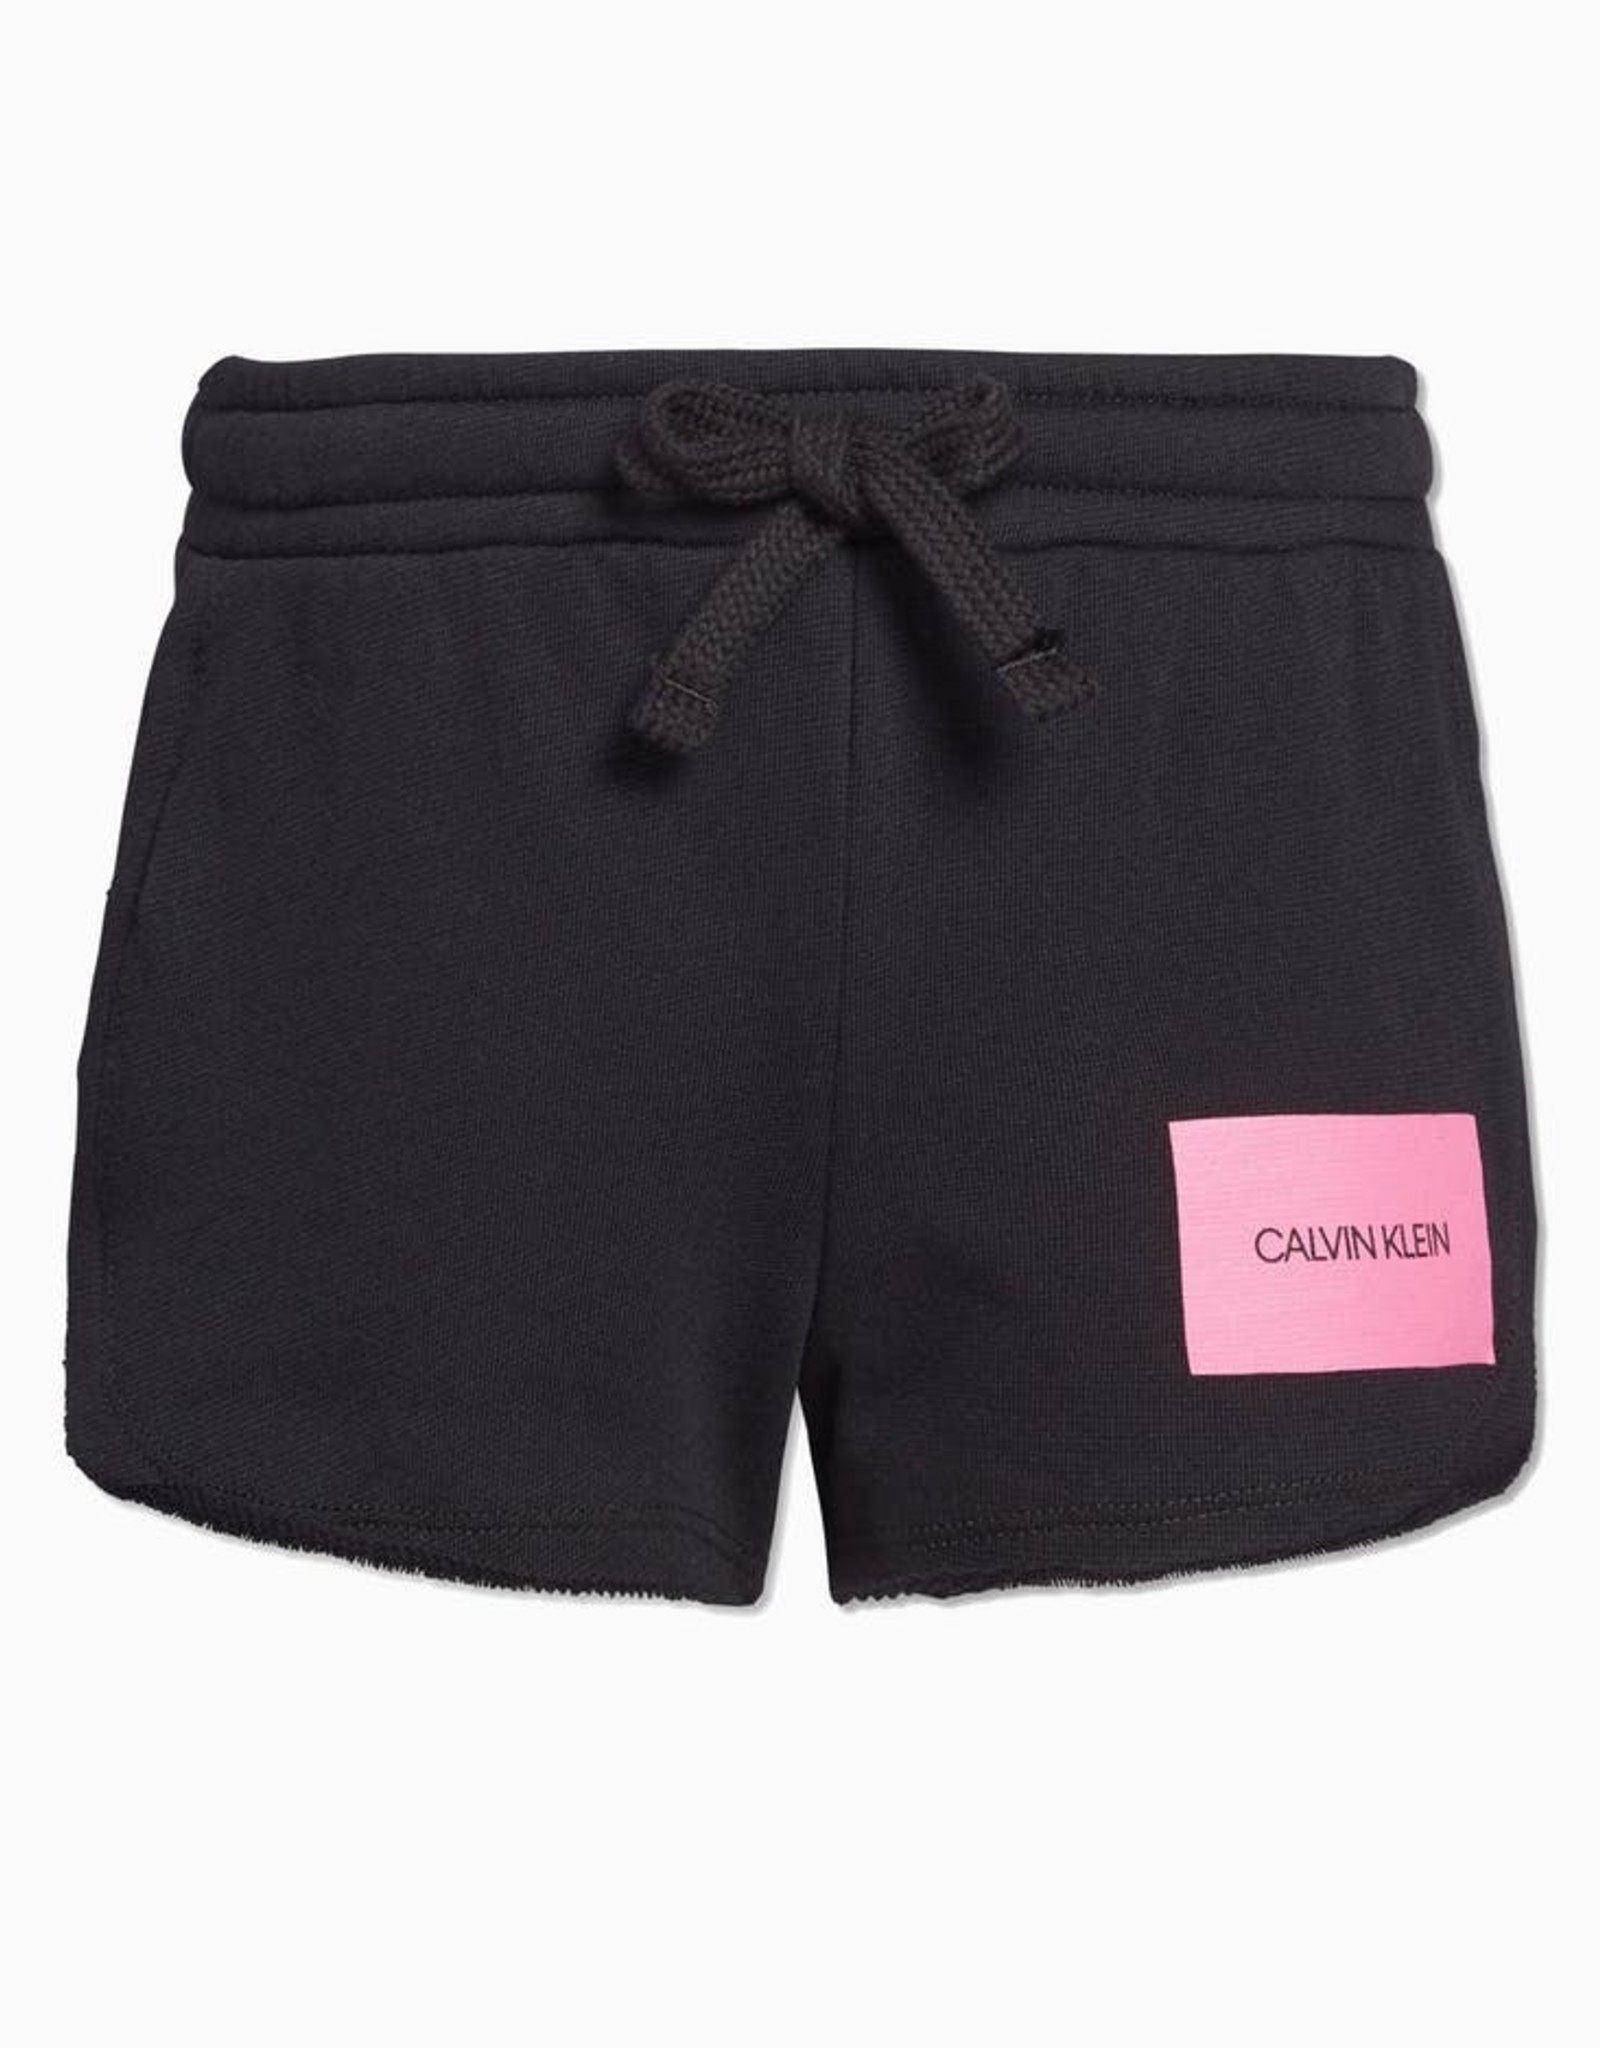 Calvin Klein Shorts Black mt 8-10